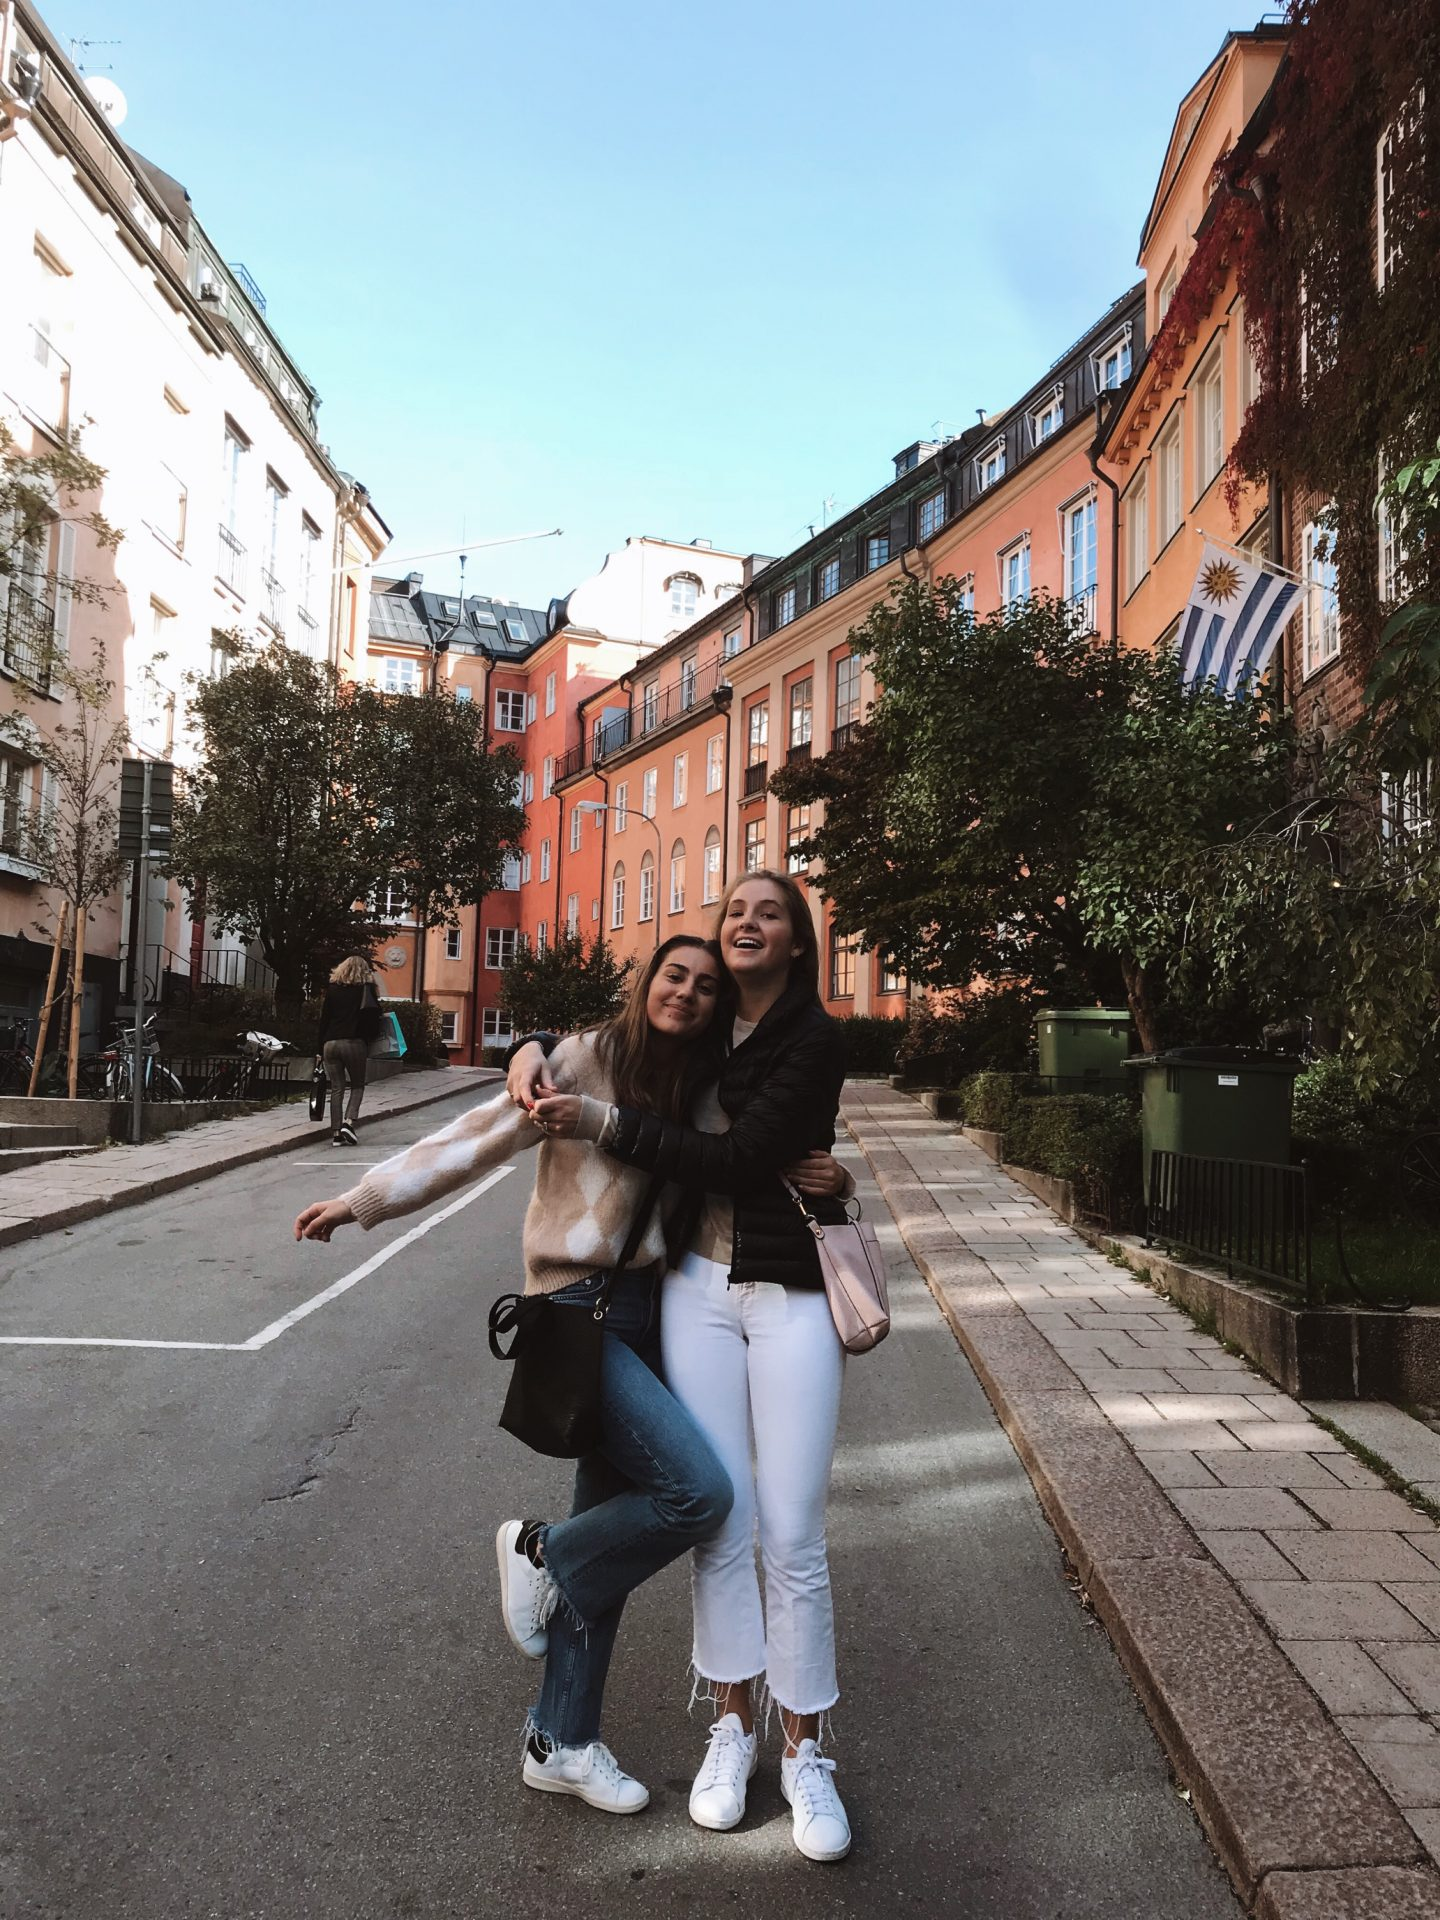 I SPENT THE BEST DAY IN STOCKHOLM AND HERE'S WHAT I DID